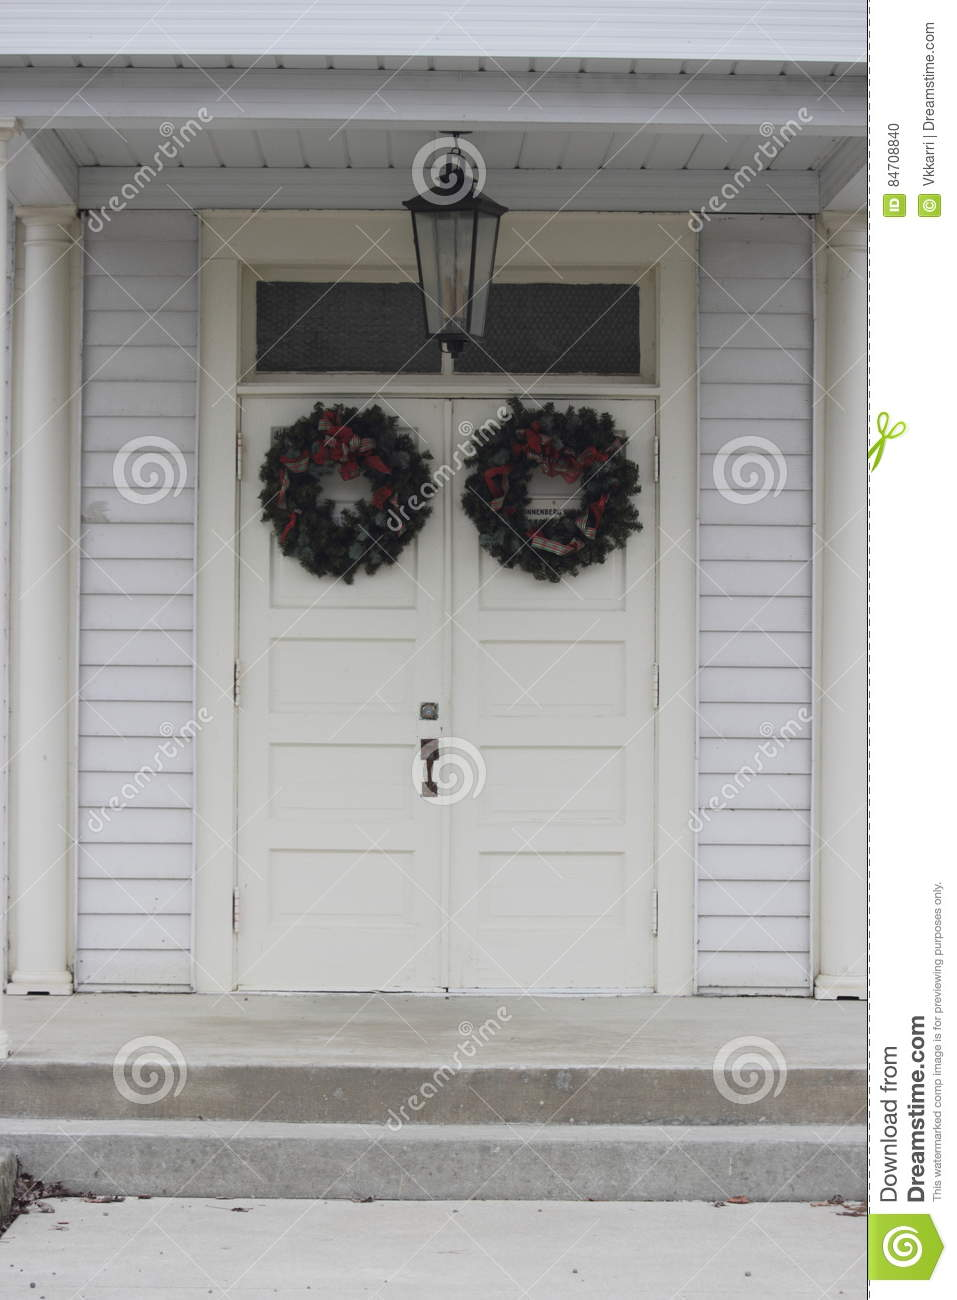 White doors with wreaths